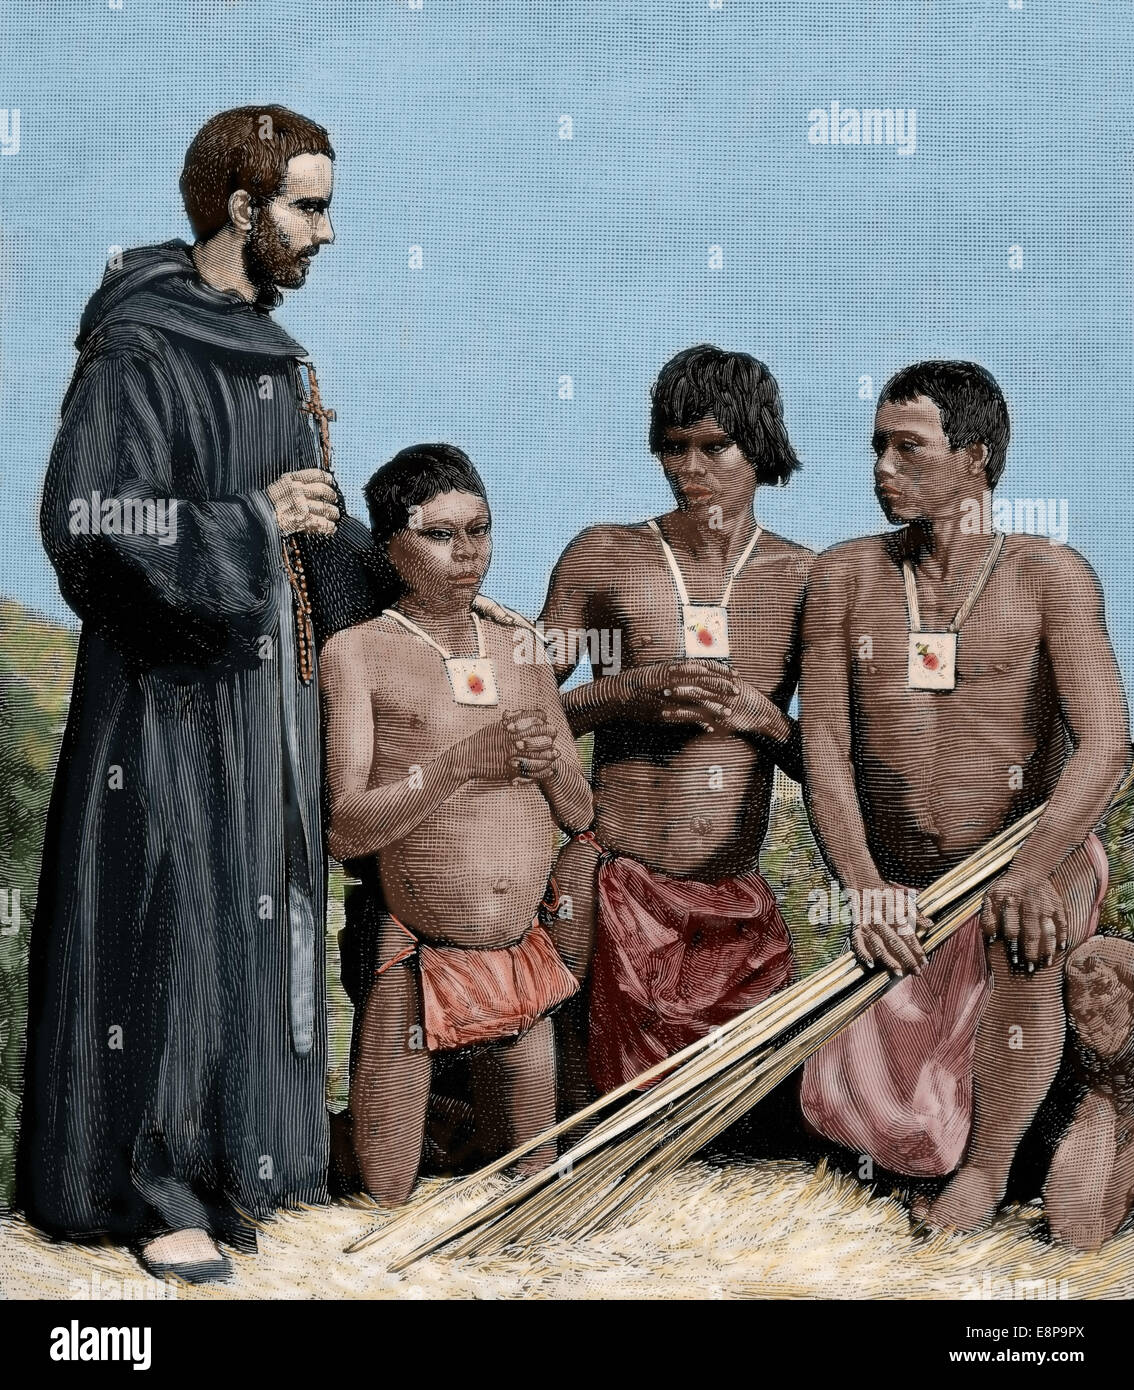 Colombia. Spanish Mission. Augustinian Recollect friar converting Guahibos Indians. Engraving, 1887. Colored. - Stock Image